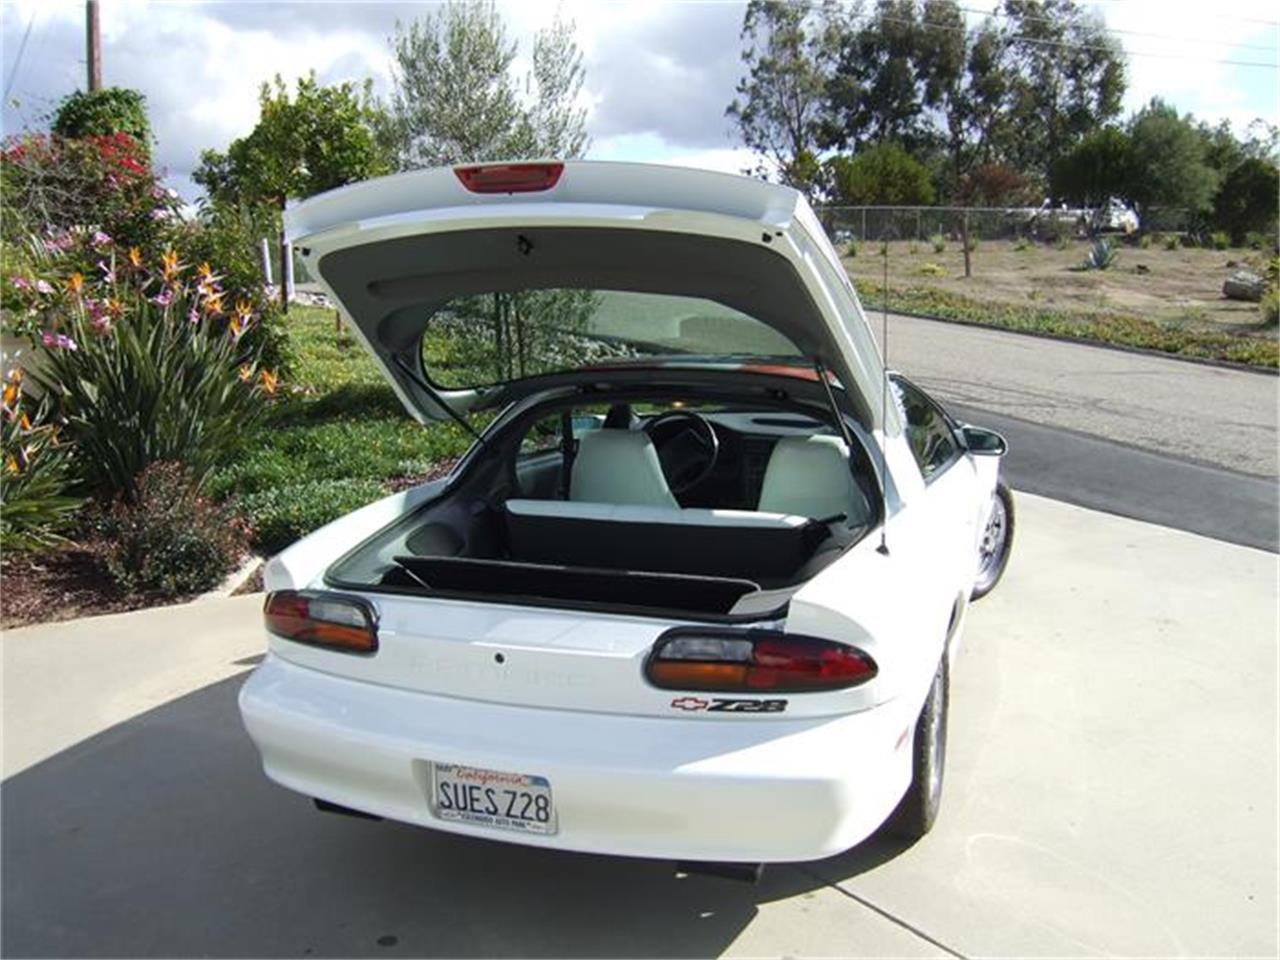 Large Picture of '97 Chevrolet Camaro Z28 - $16,000.00 Offered by a Private Seller - B1LI